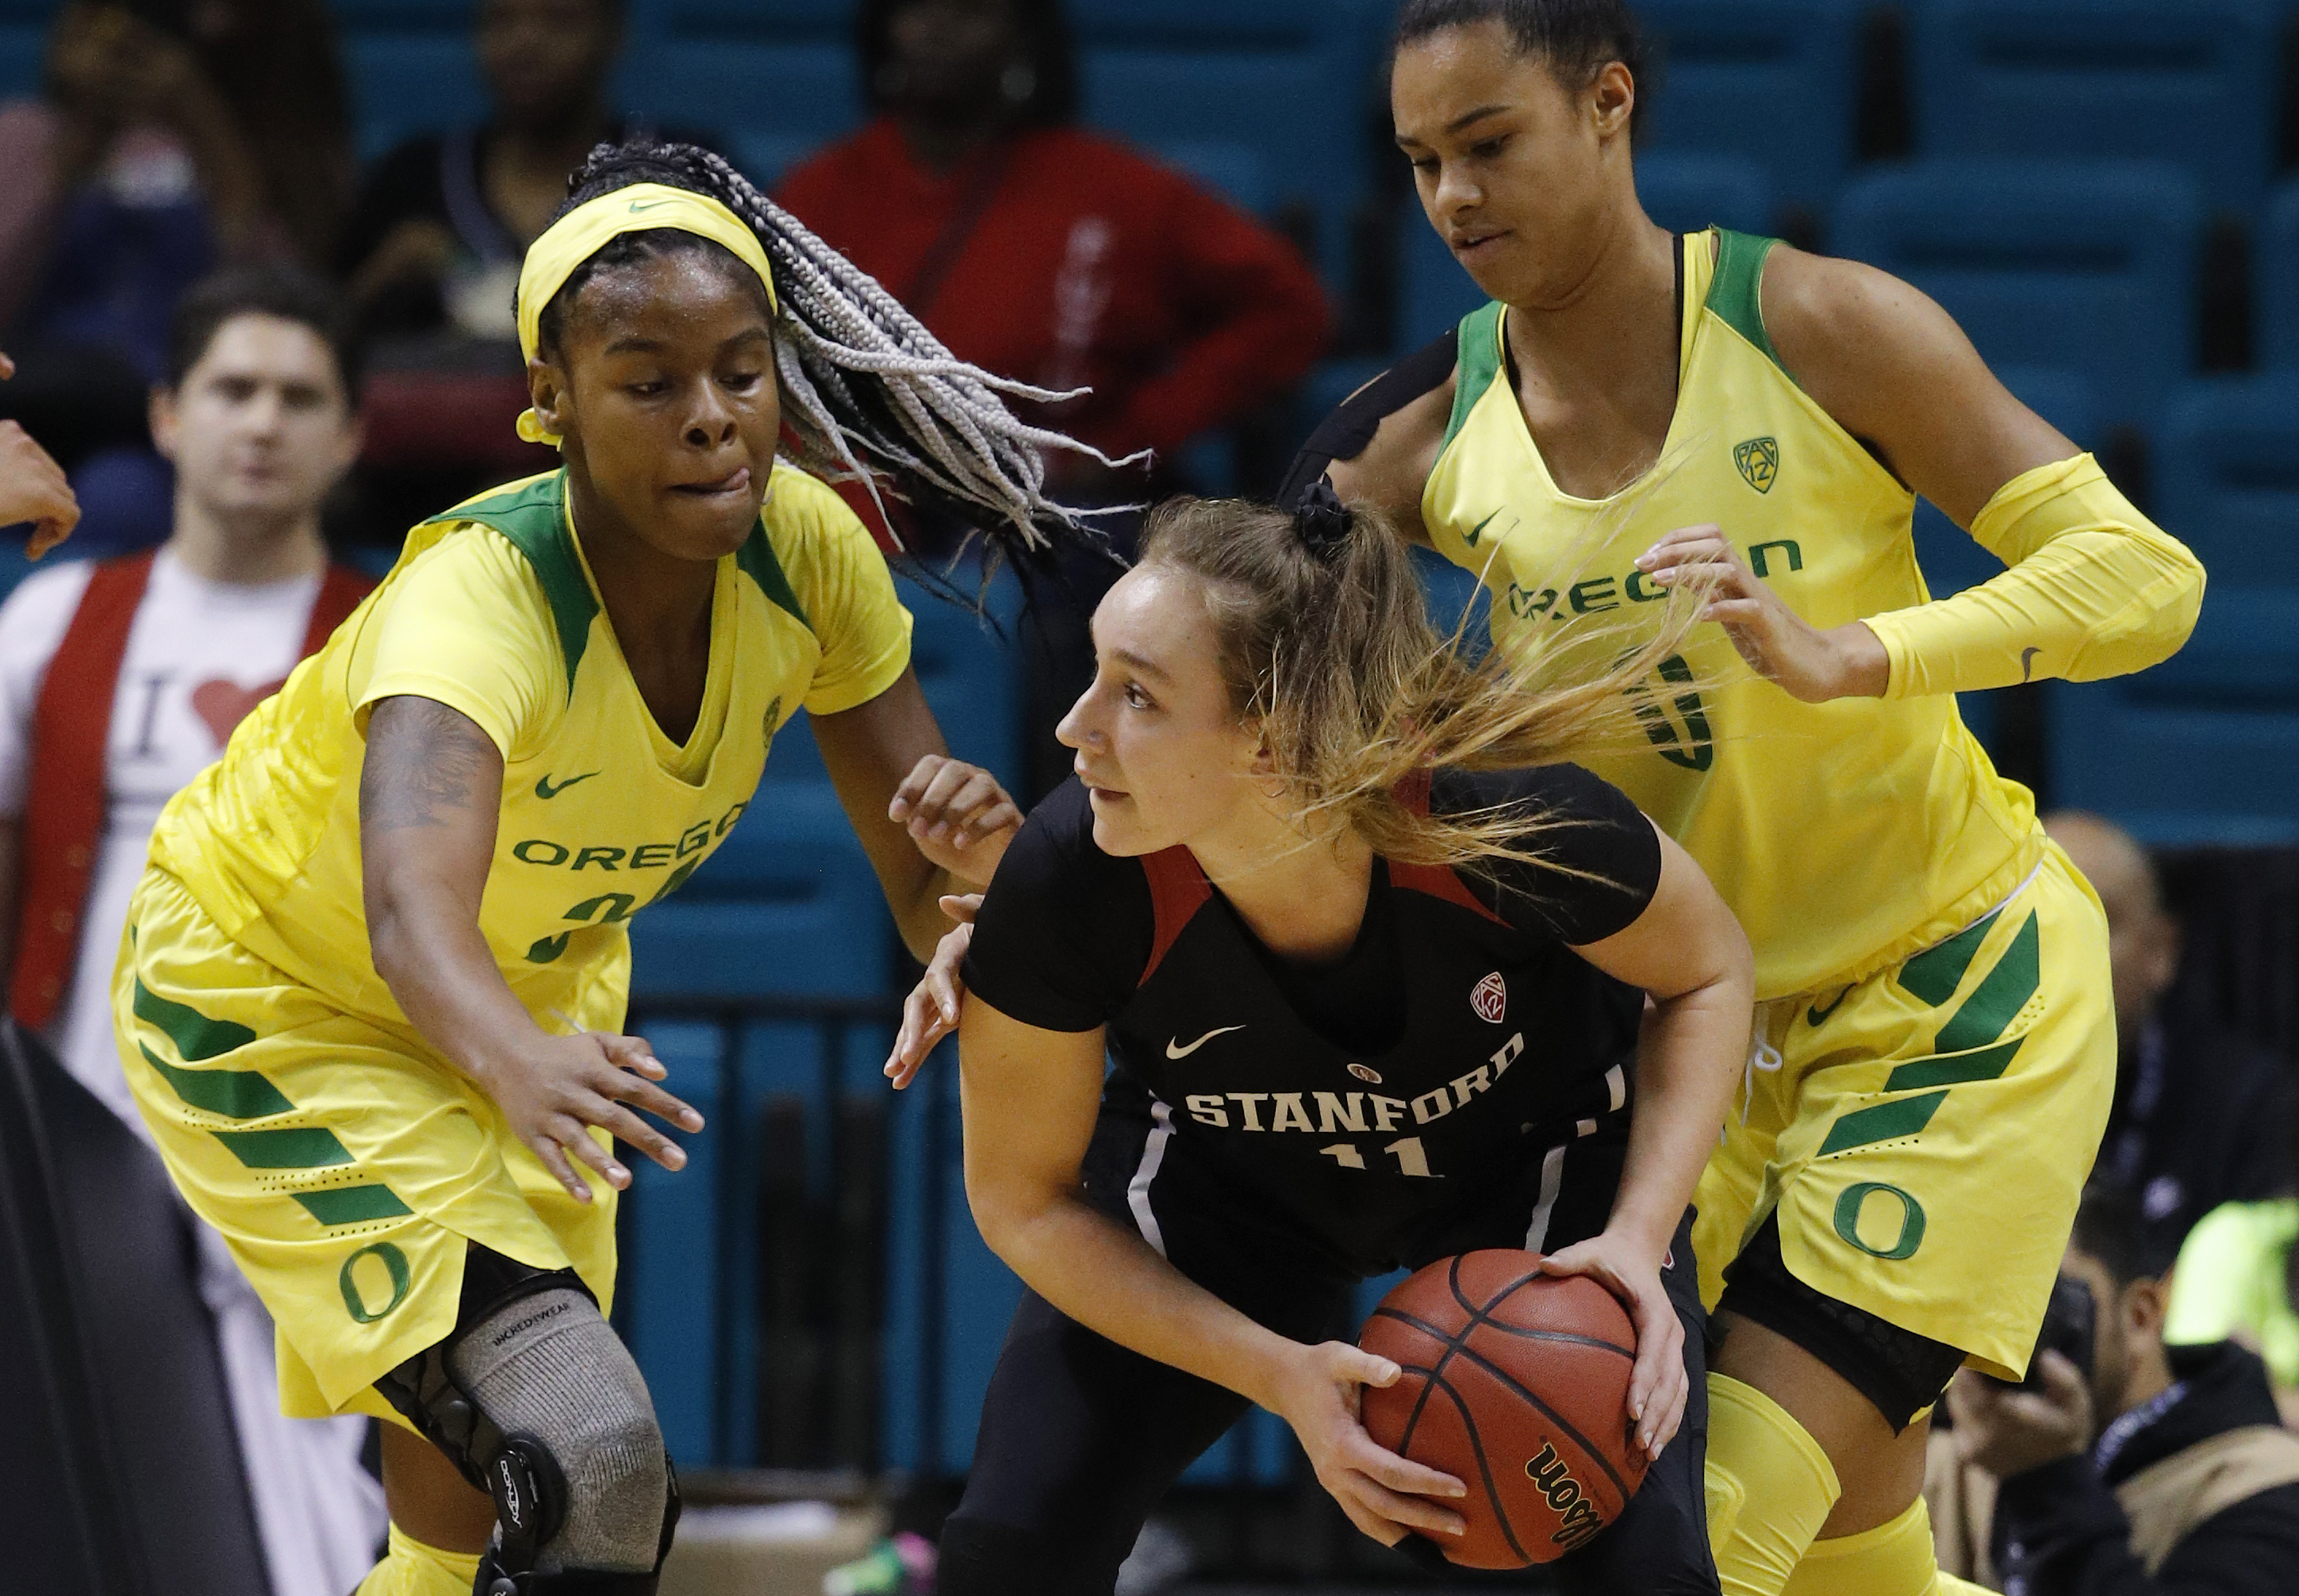 Stanford beats Oregon to win Pac-12 Tournament title